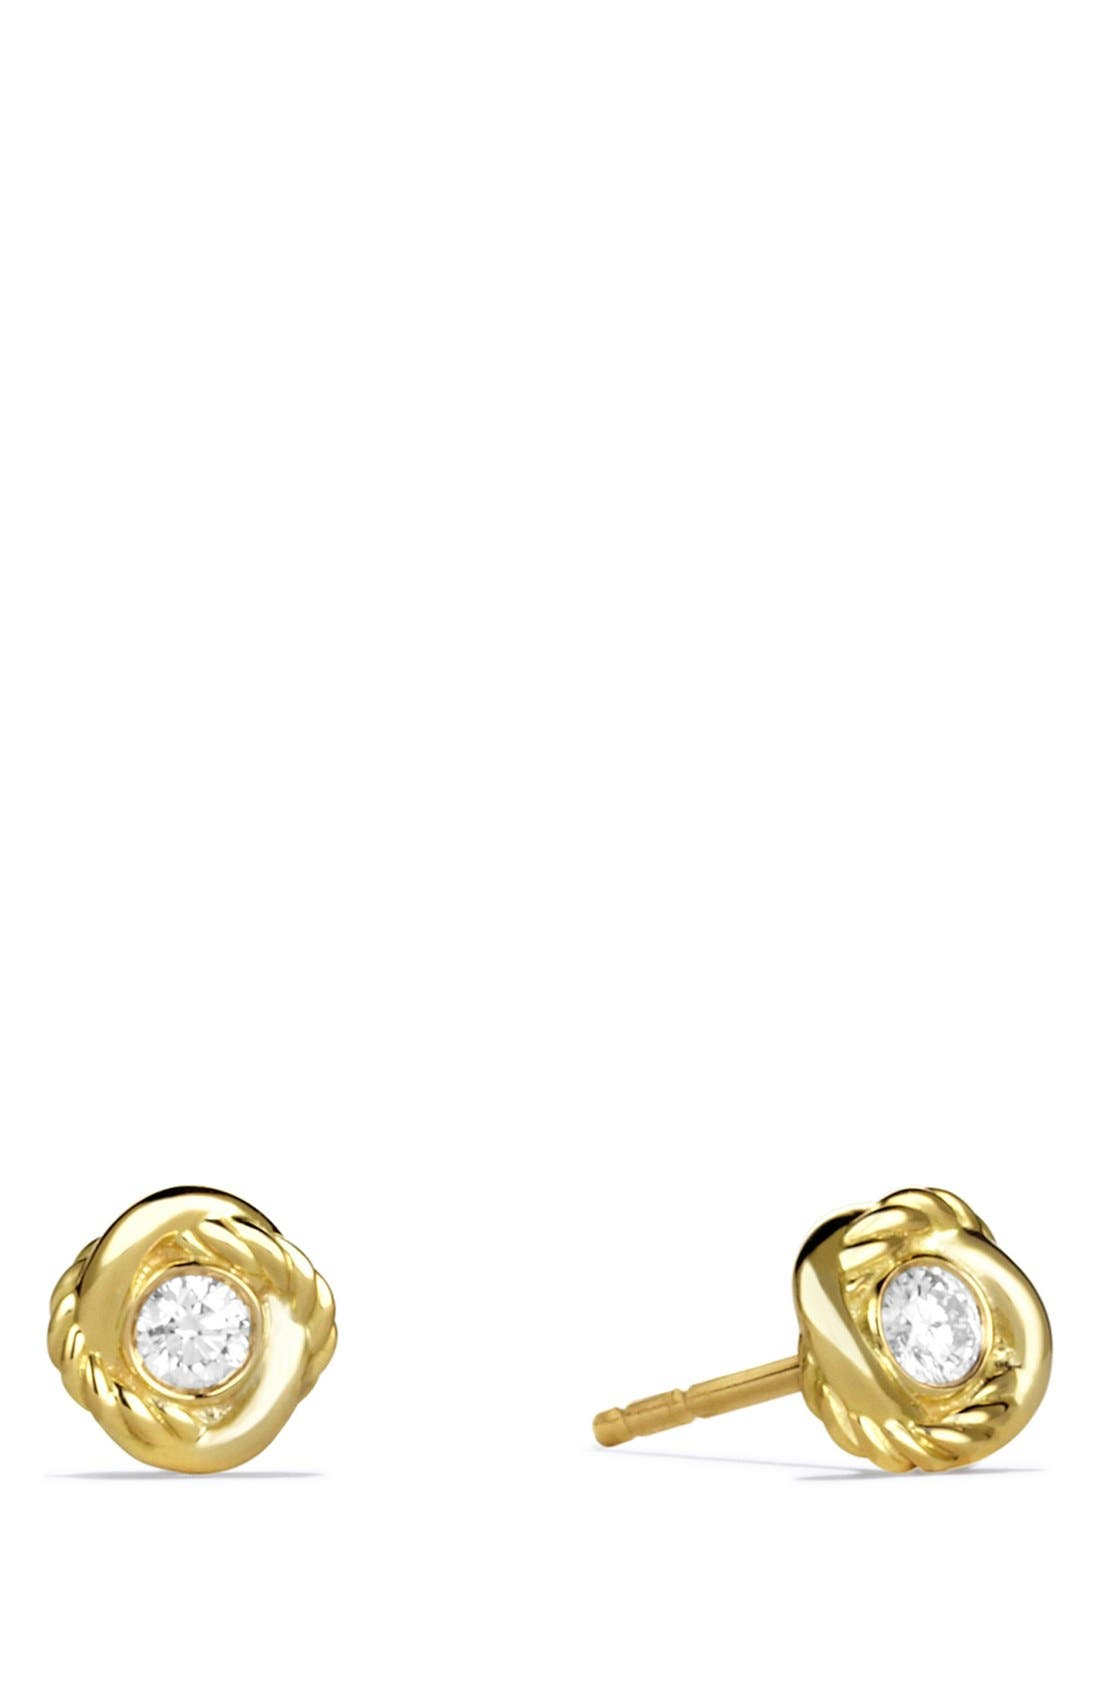 'Infinity' Earrings with Diamonds in Gold,                         Main,                         color, Diamond